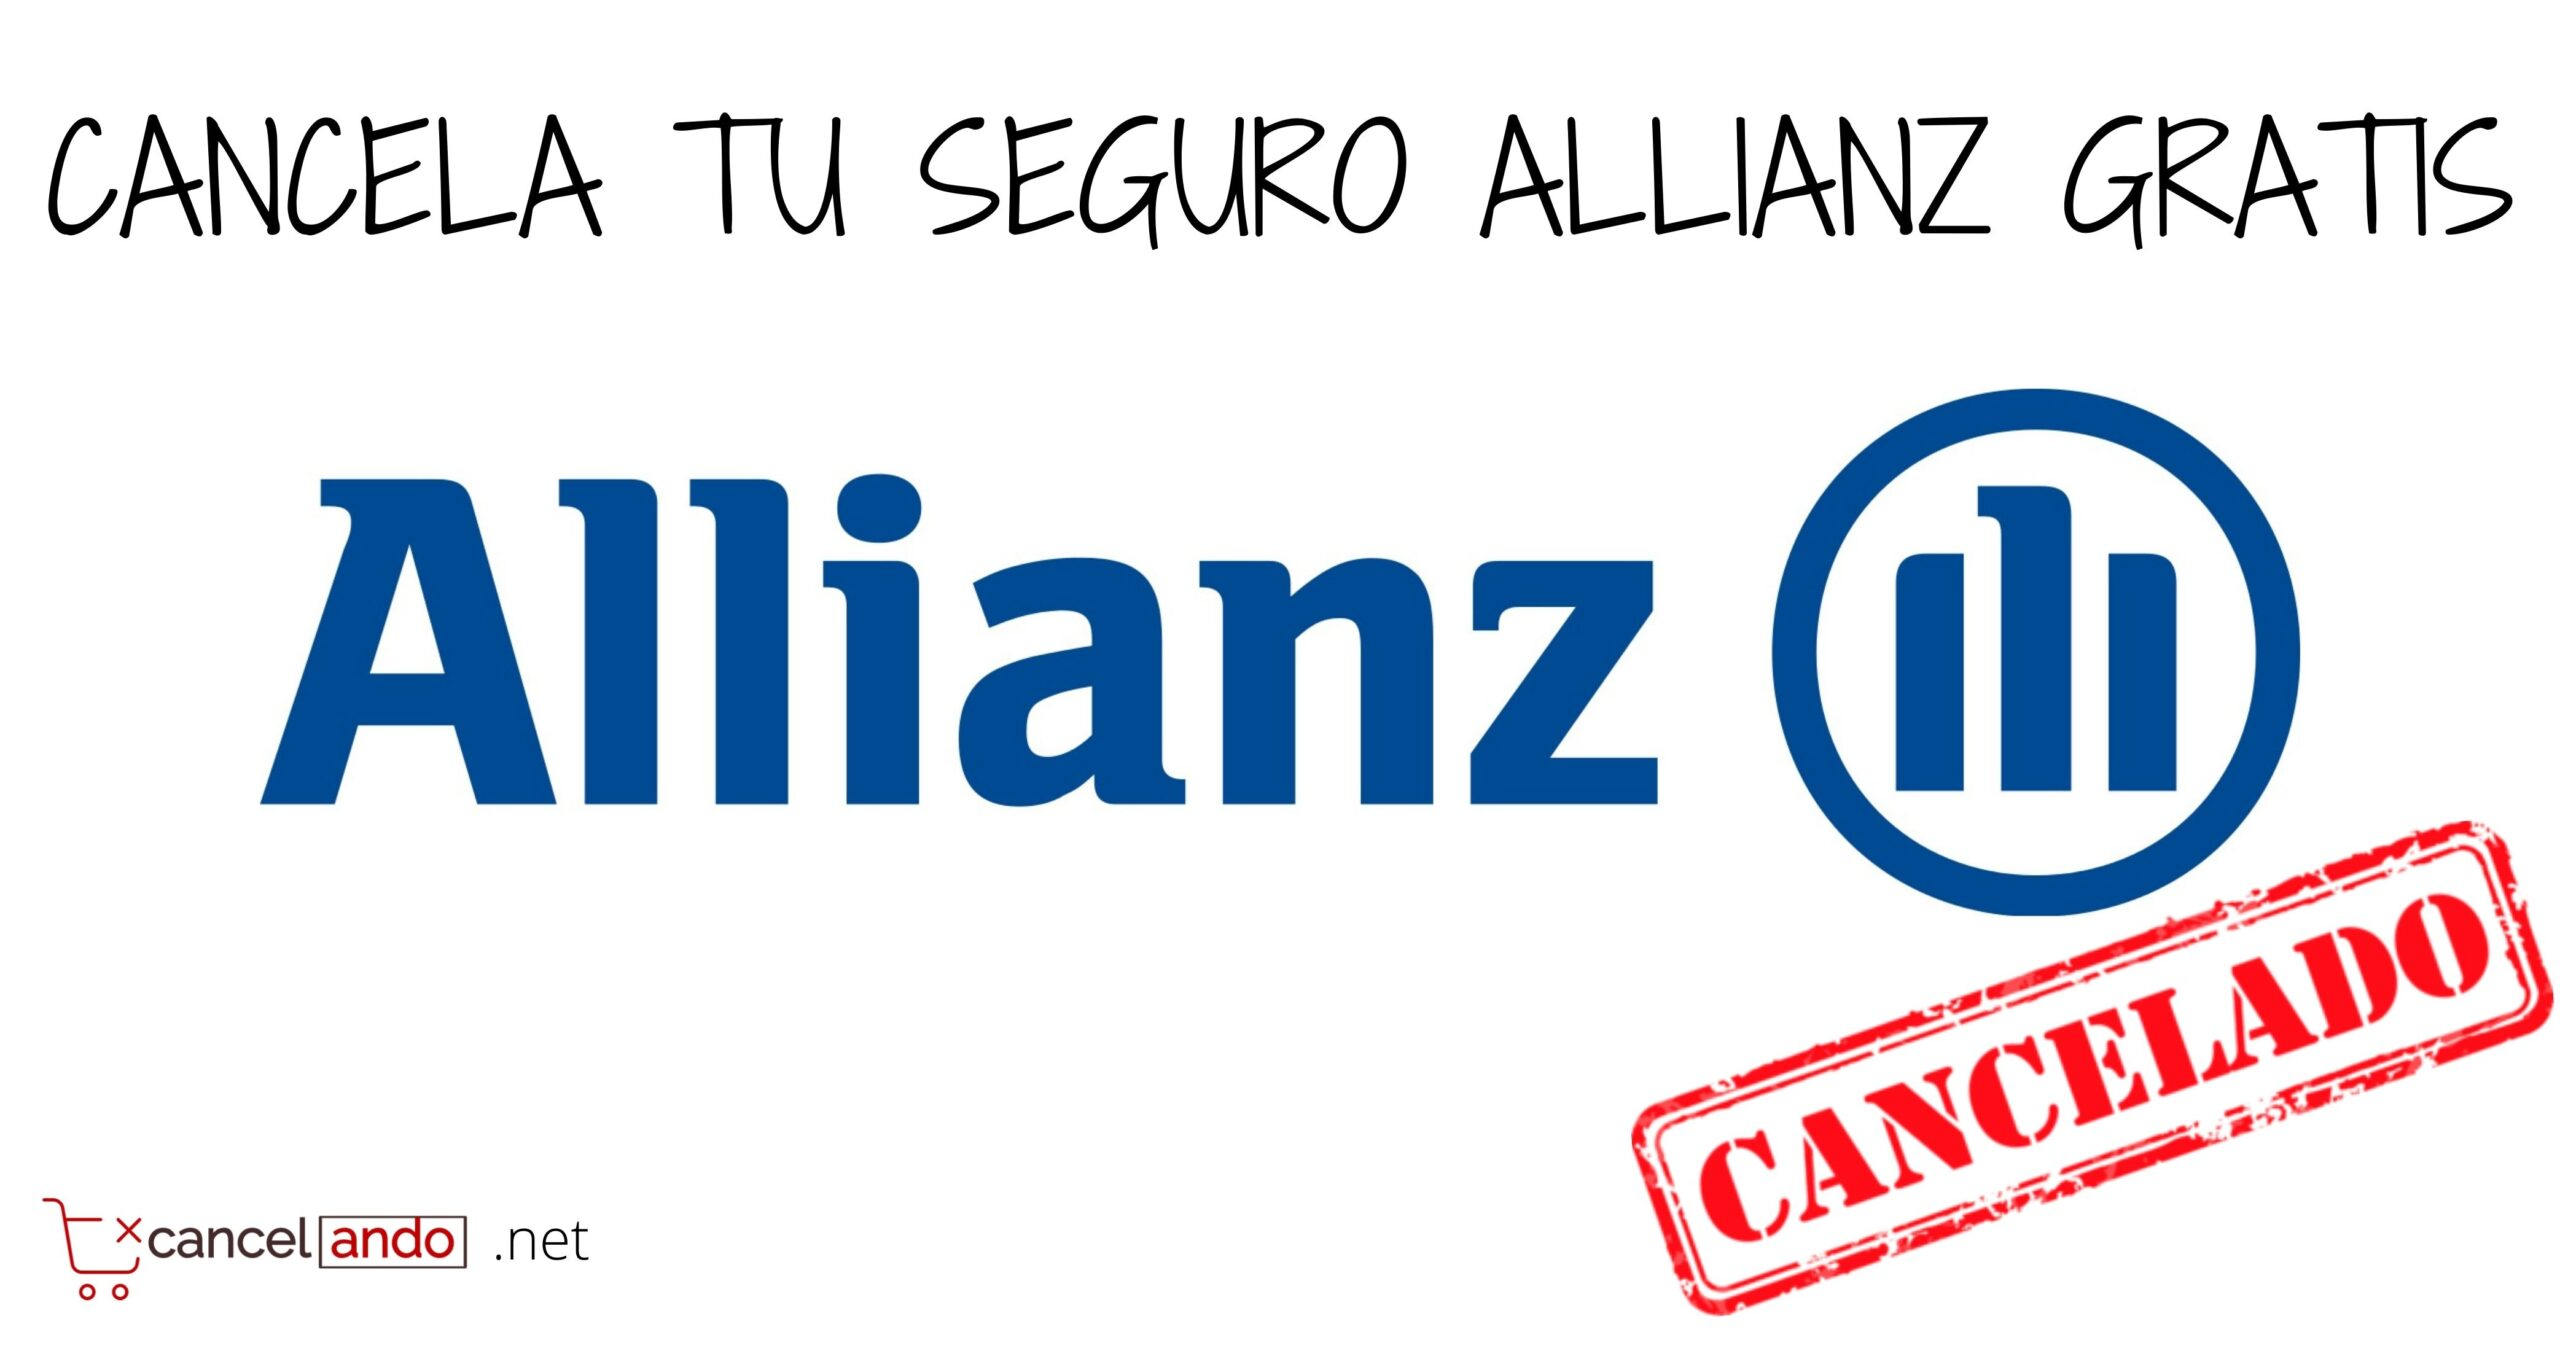 cancelar seguro allianz